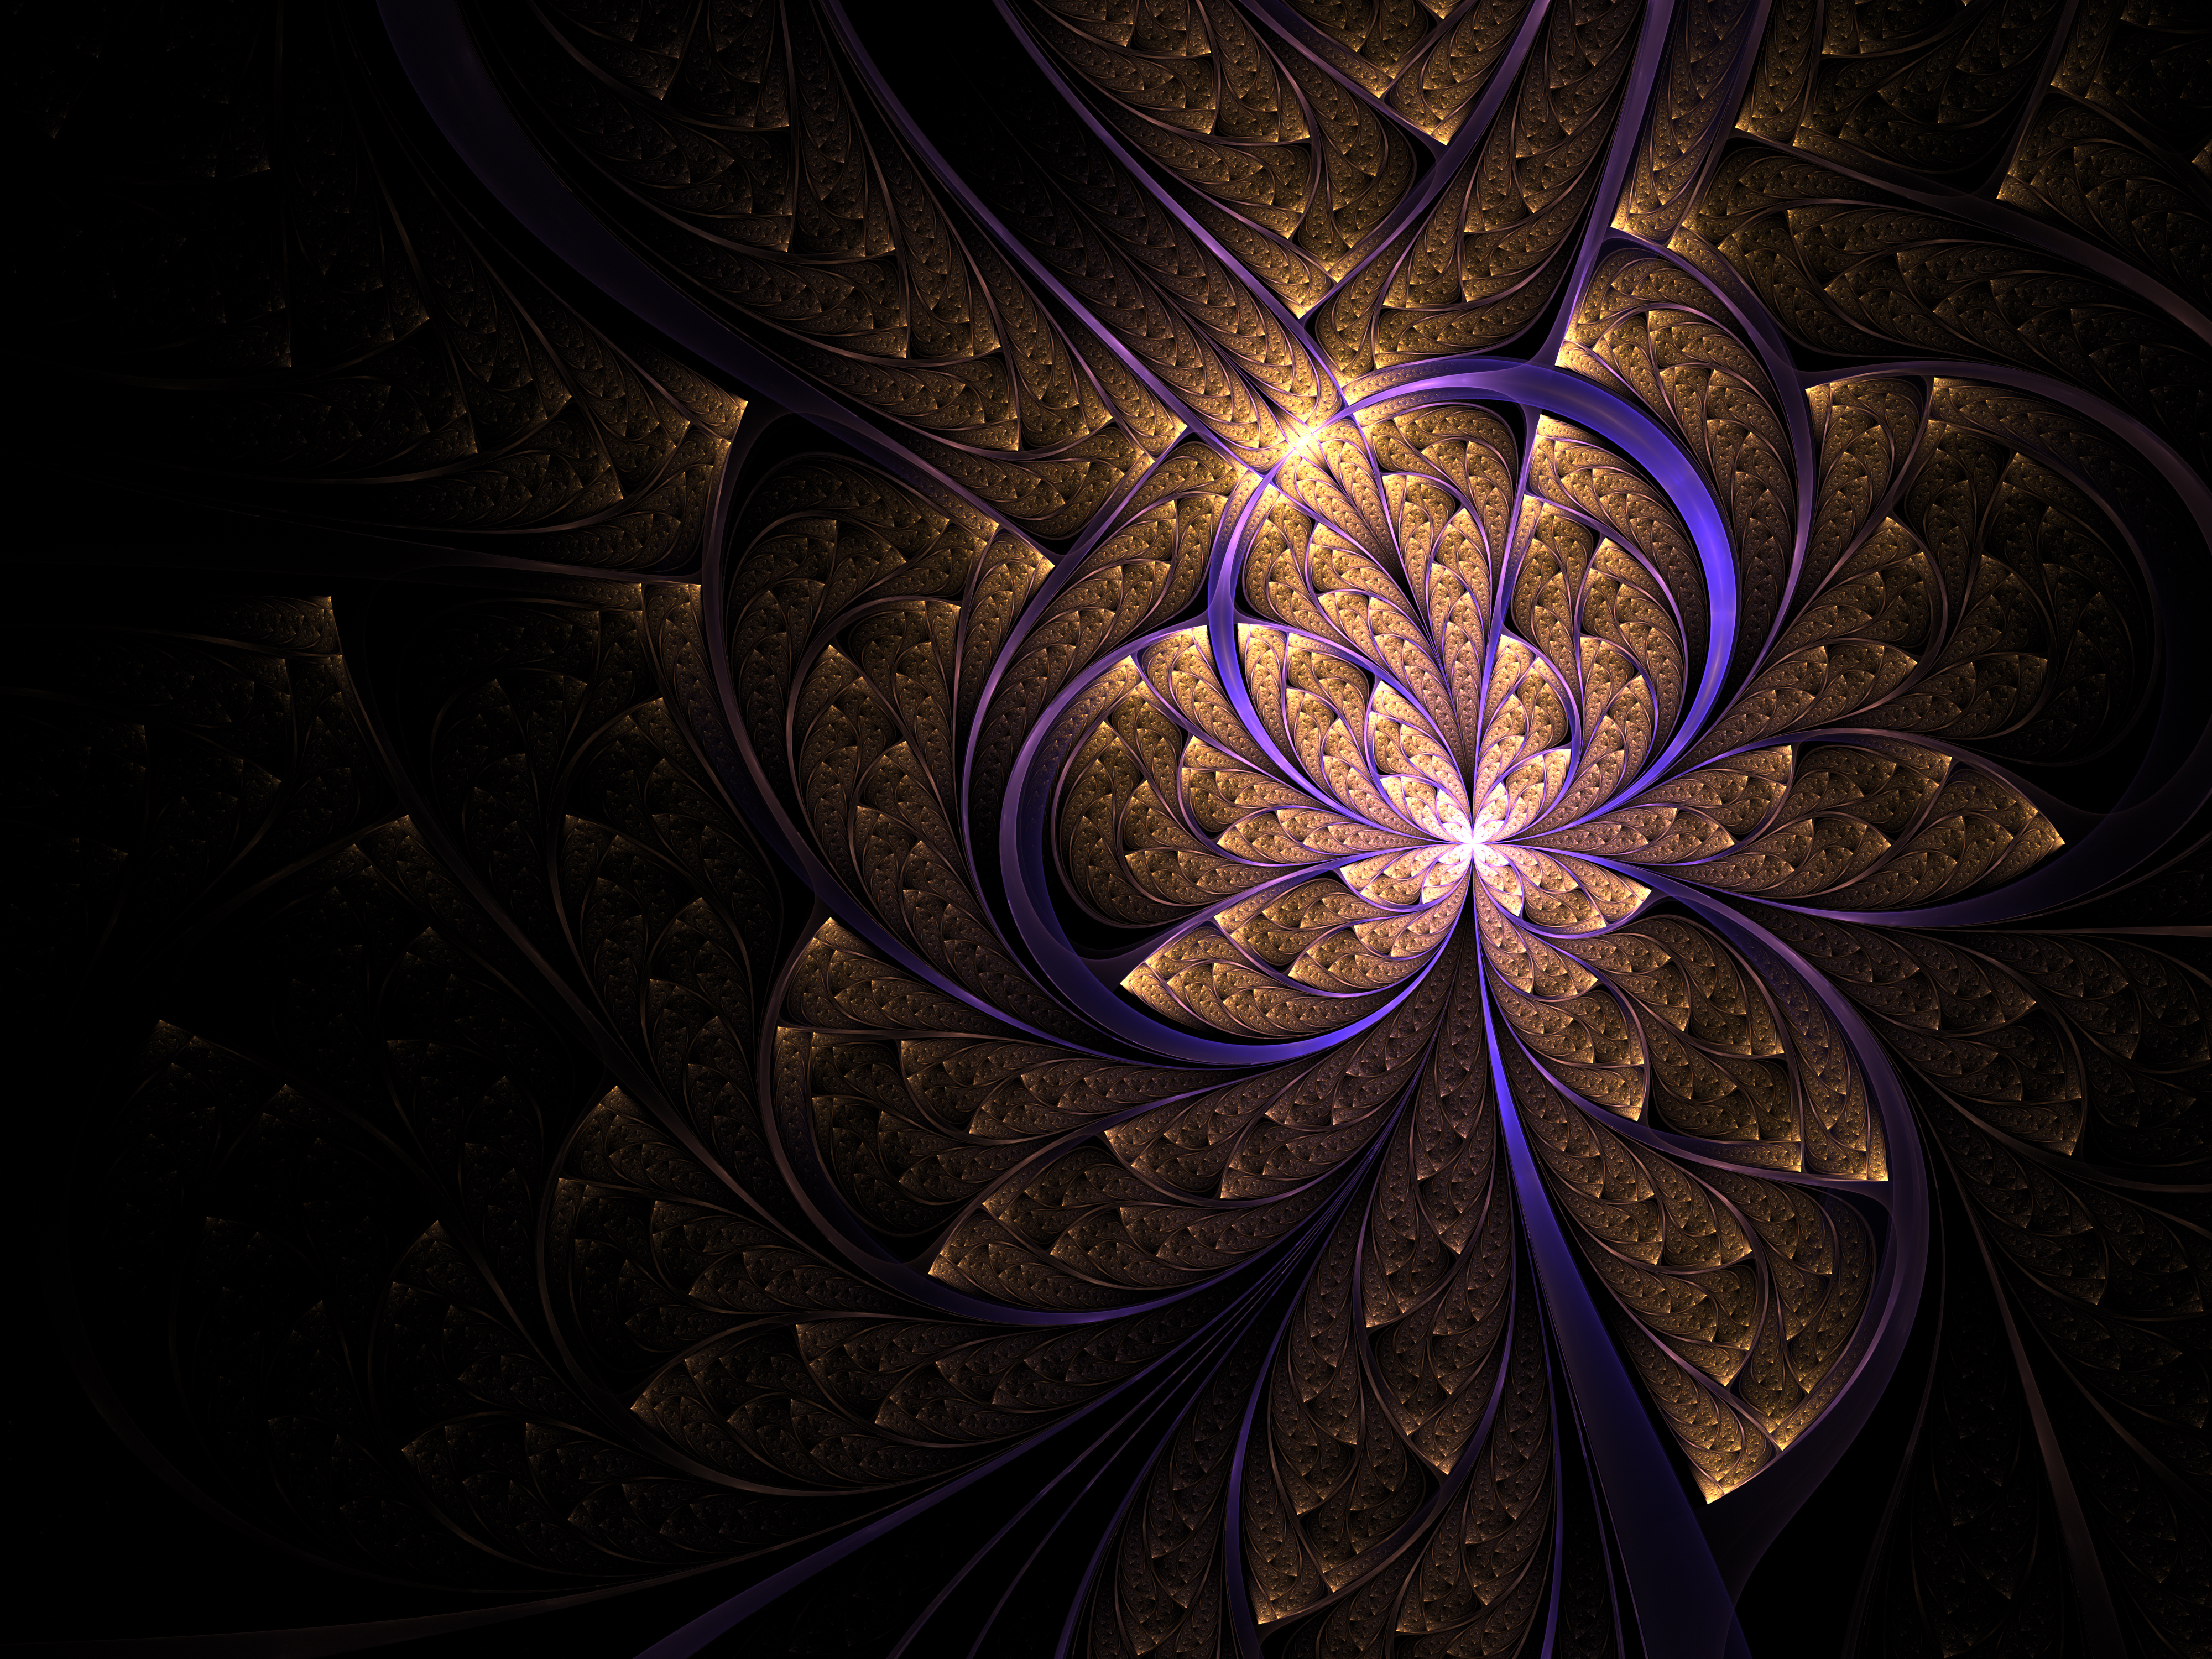 71887 download wallpaper Abstract, Fractal, Confused, Intricate, Glow, Digital screensavers and pictures for free